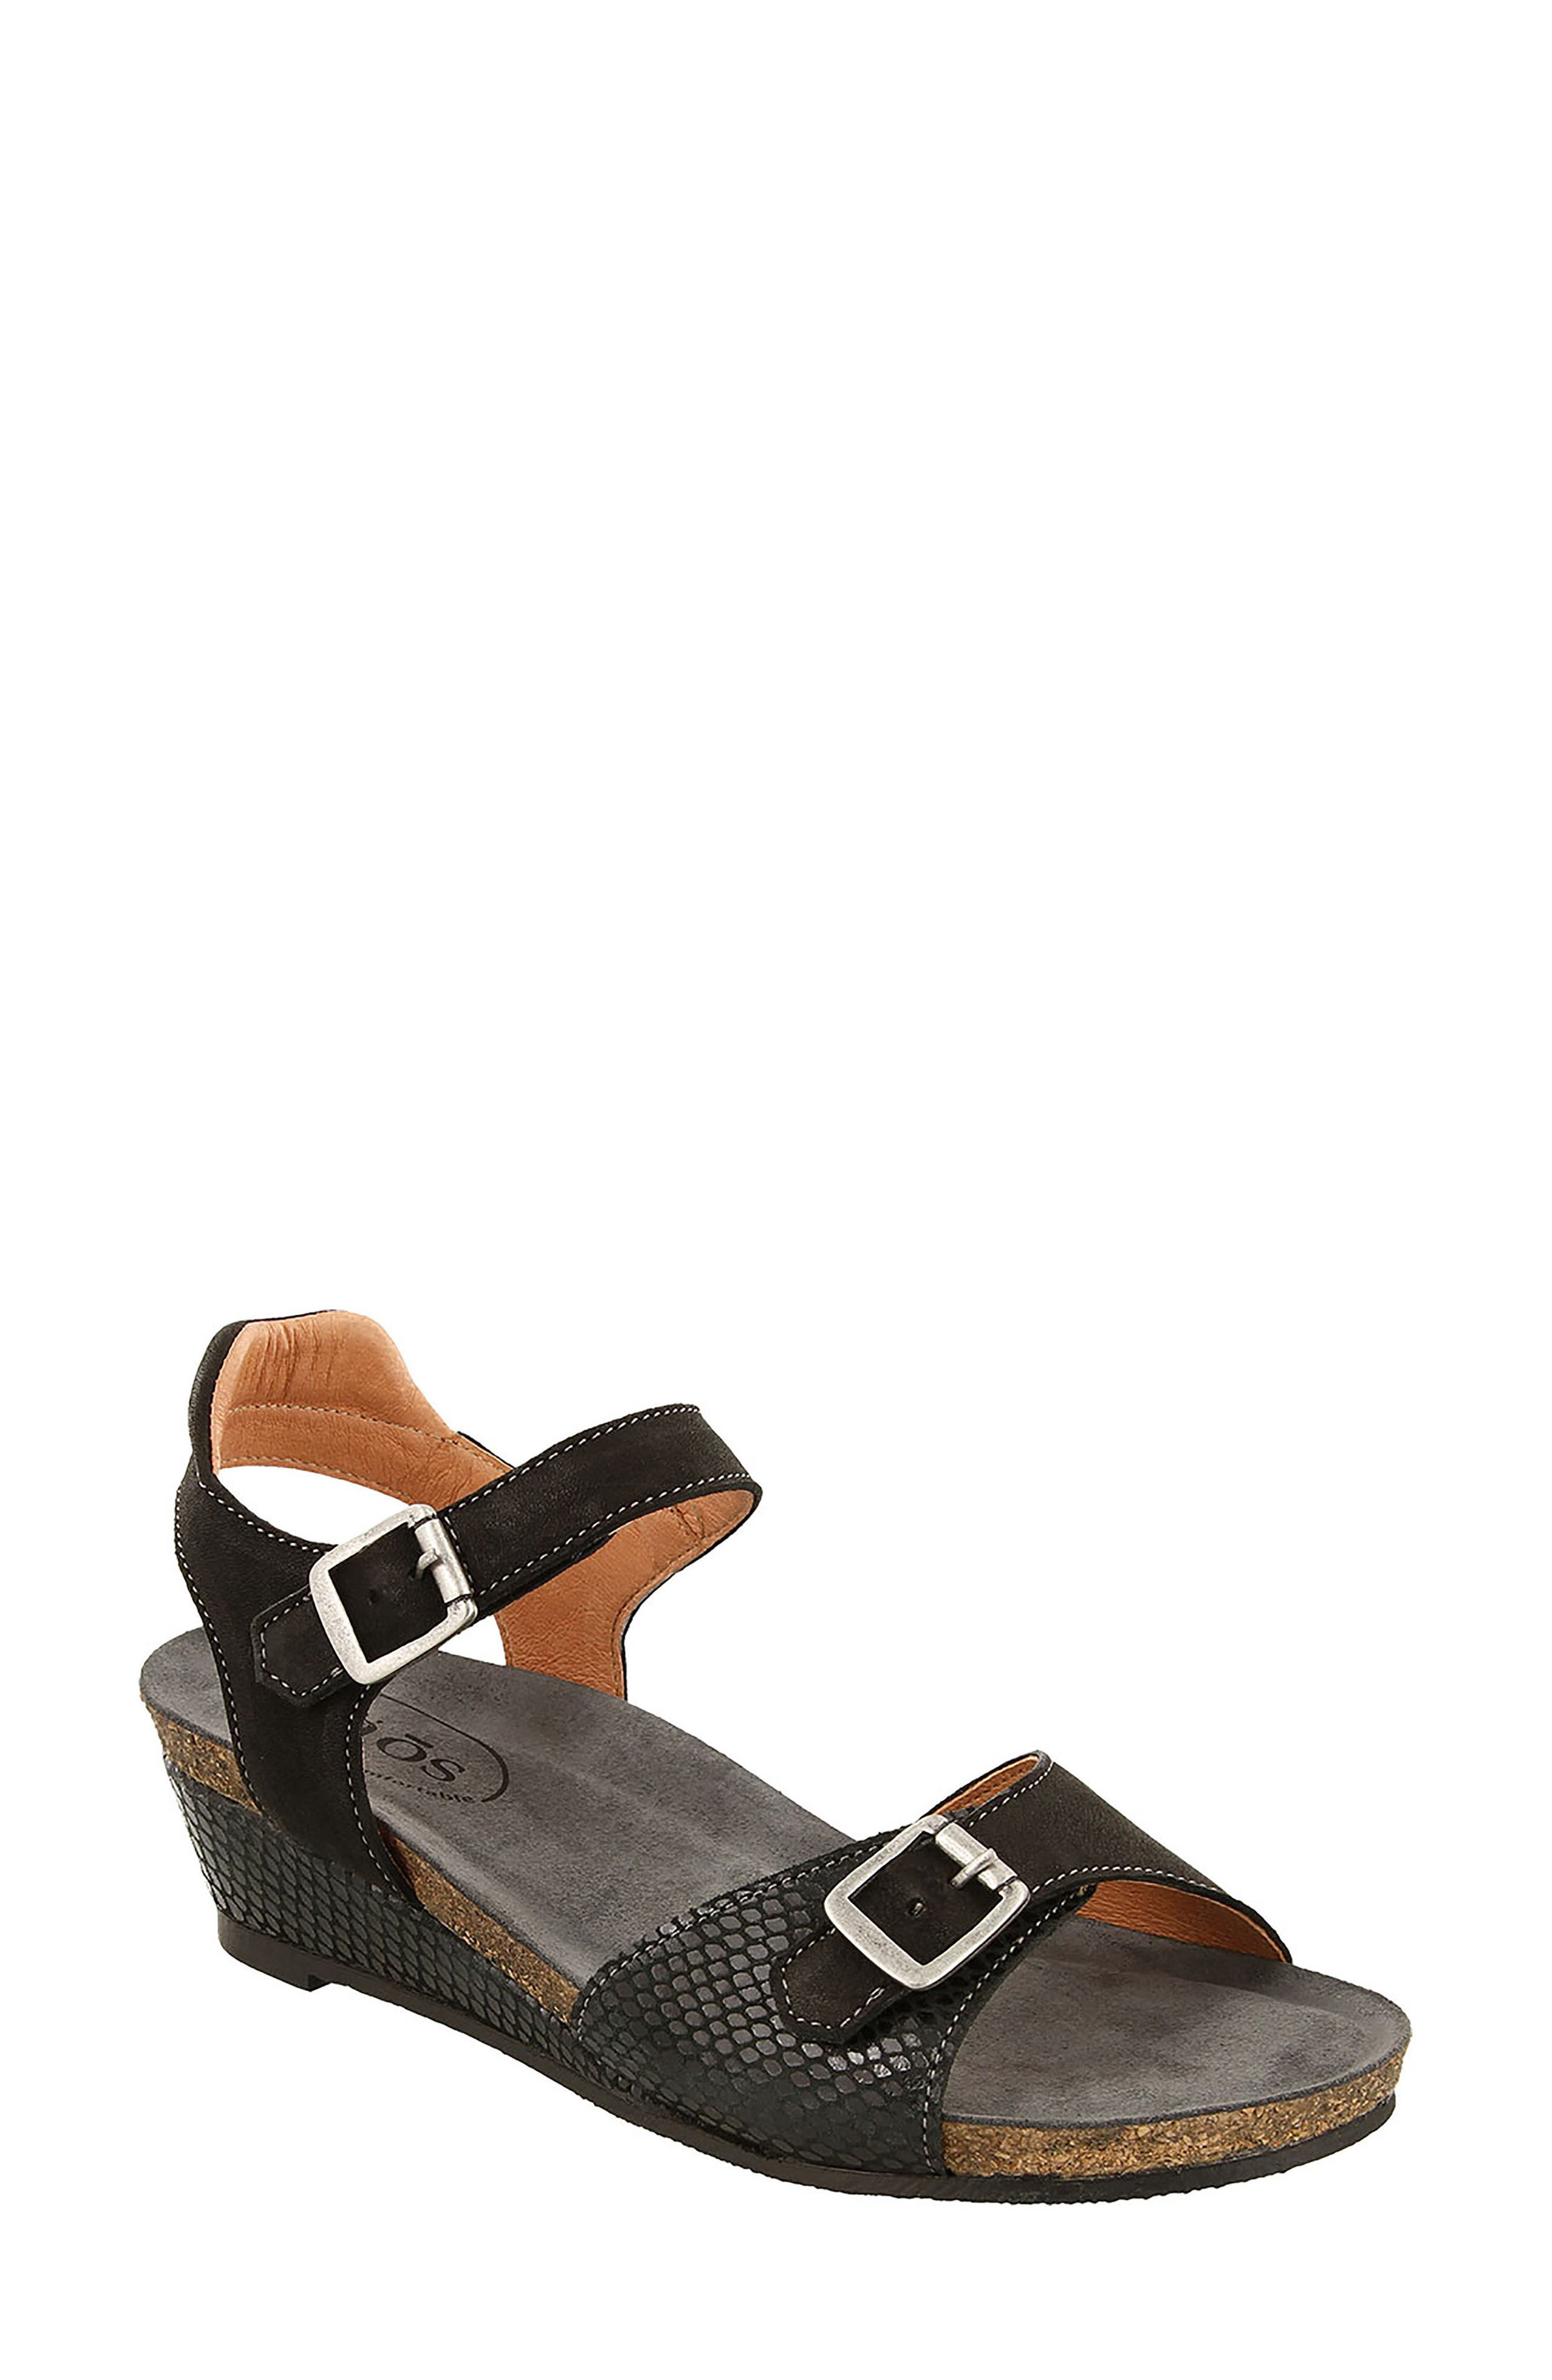 Traveler Wedge Sandal,                         Main,                         color, 002